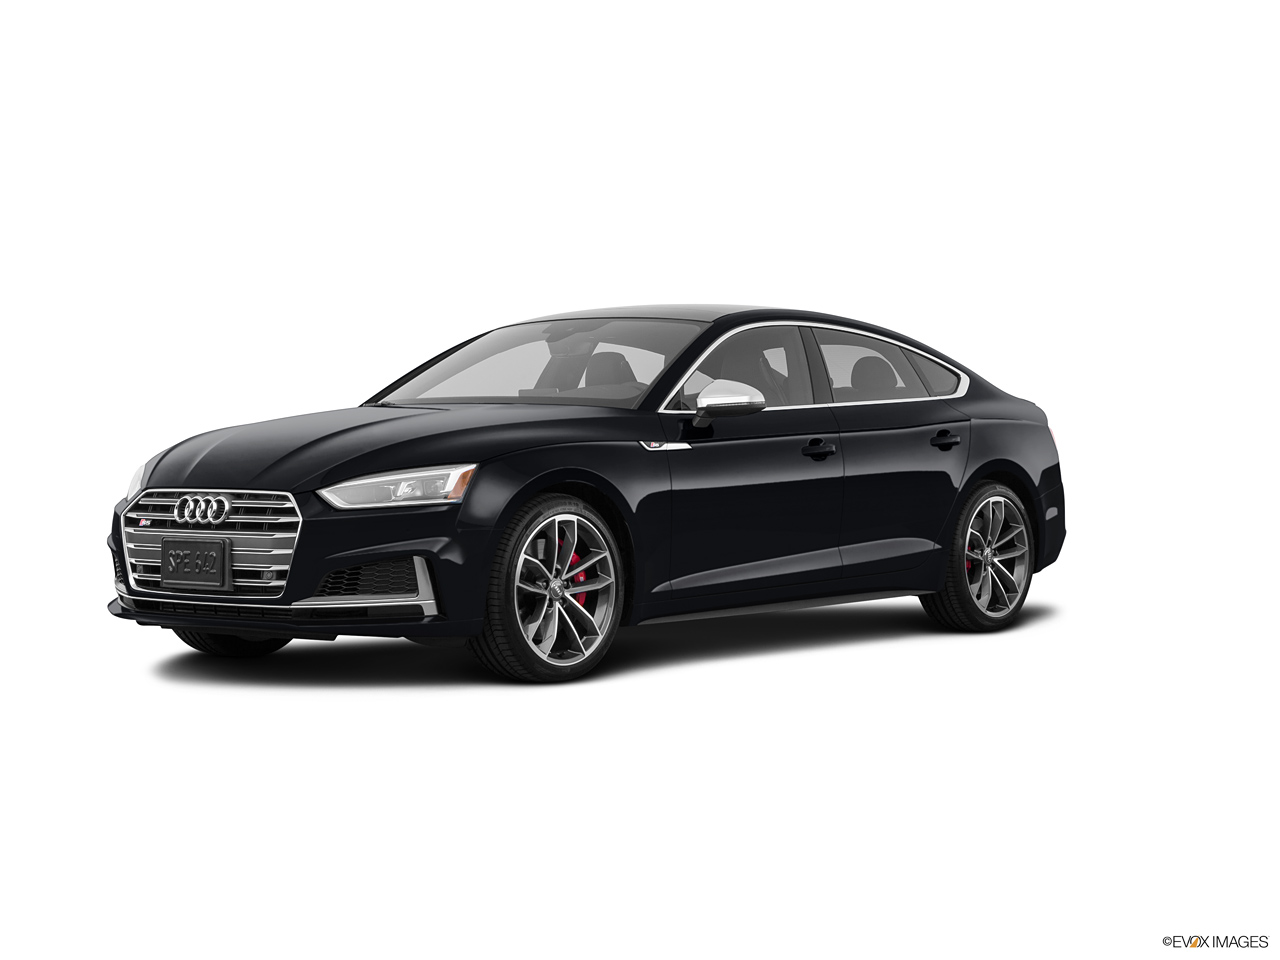 car features list for audi s5 sportback 2018 3 0 tfsi. Black Bedroom Furniture Sets. Home Design Ideas